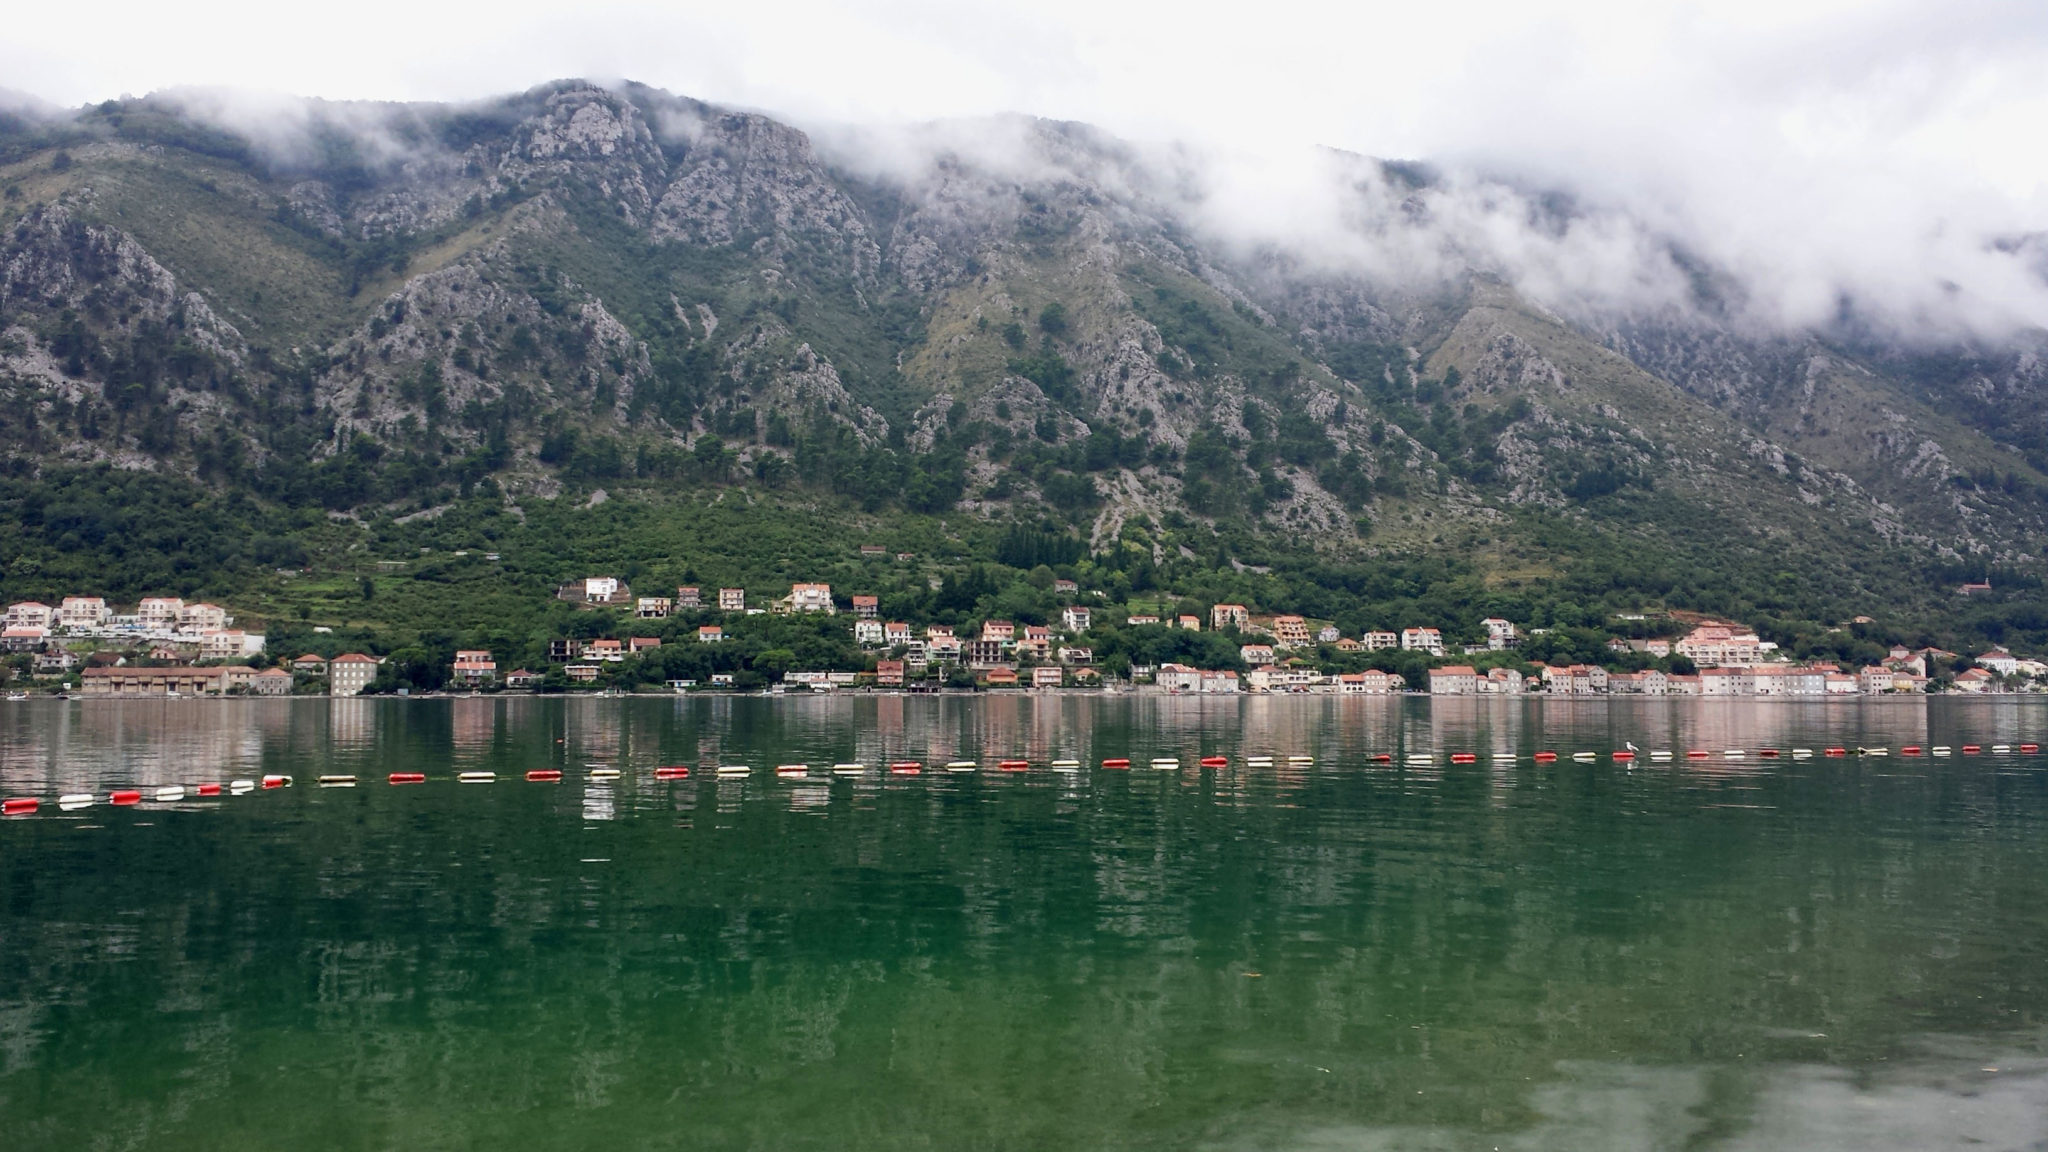 Hema_Montenegro_Kotor_Bay_Mountains